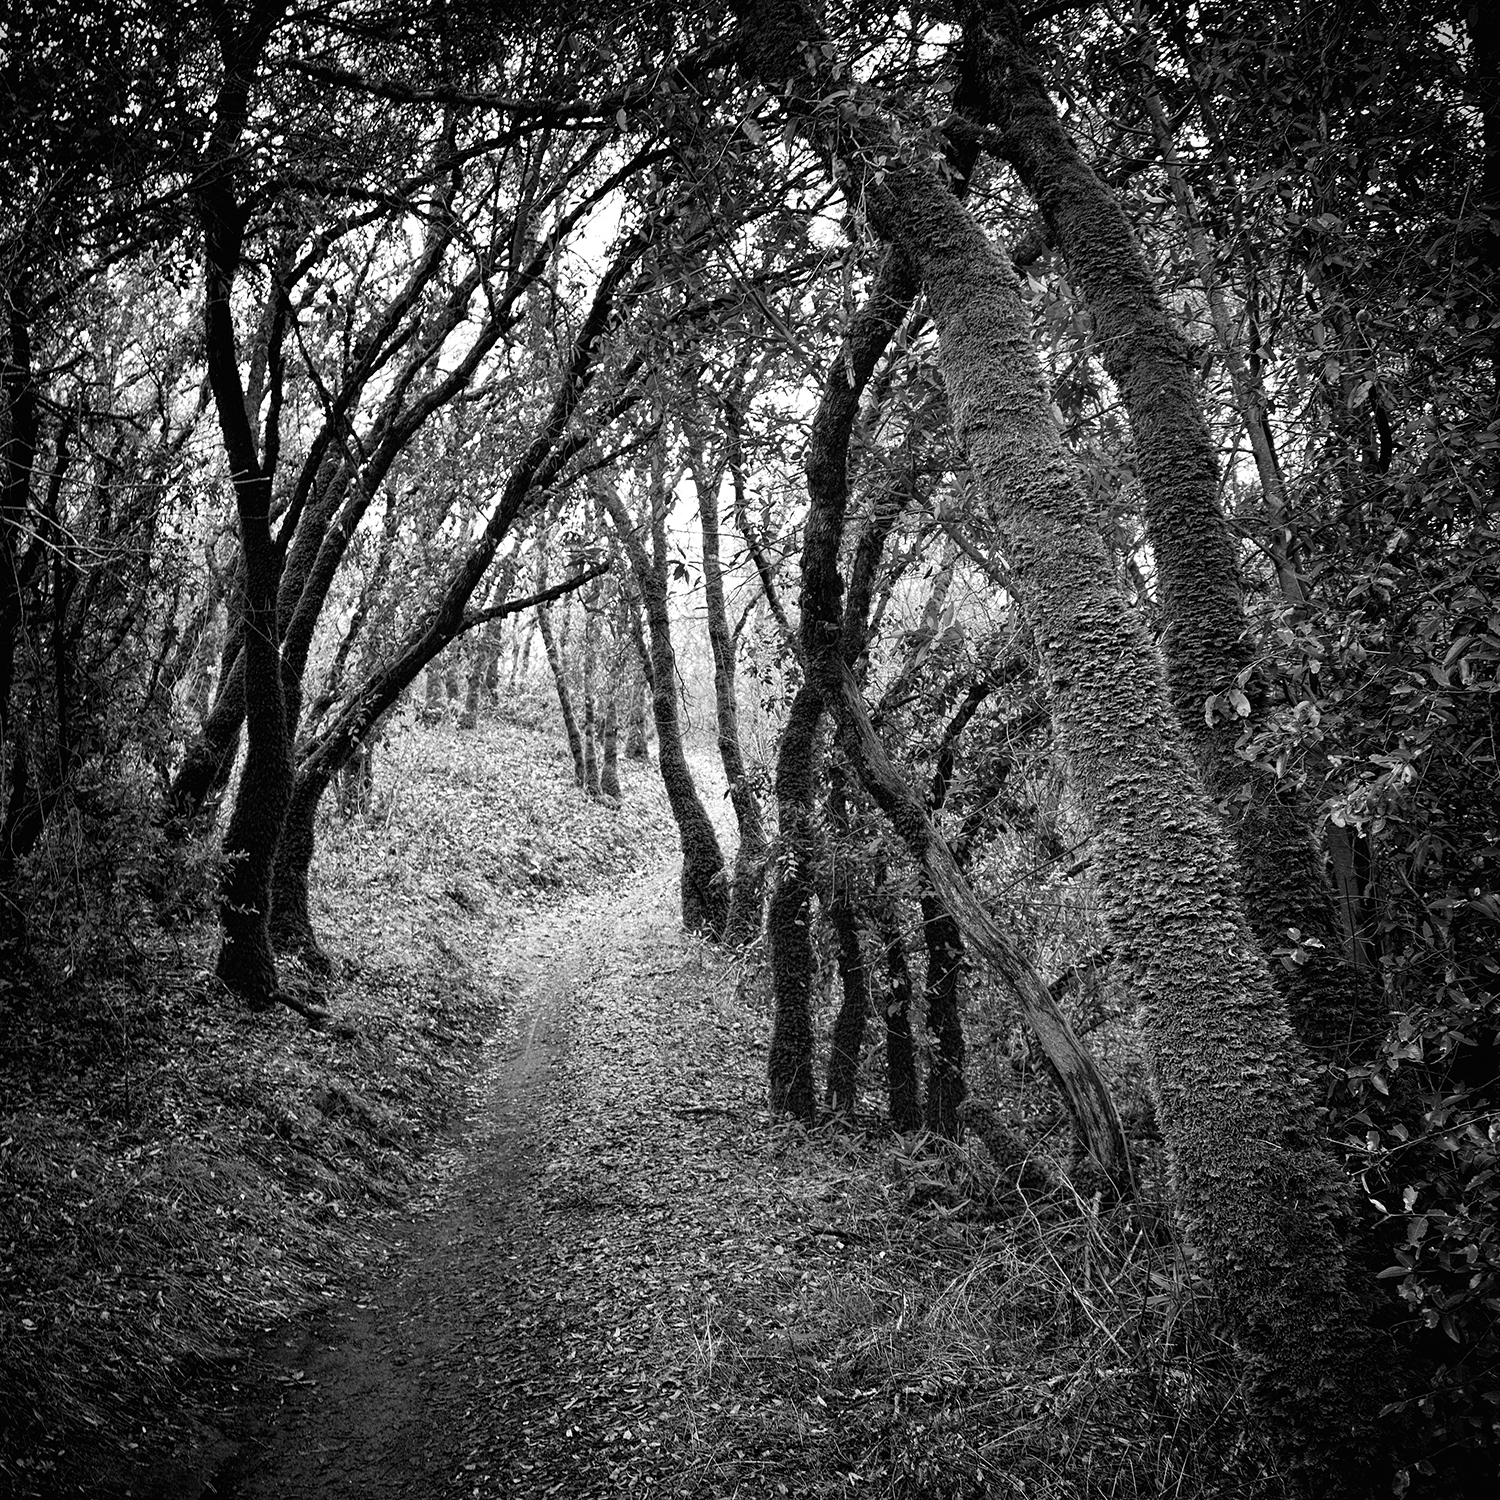 Foresthill Divide Trail, Study 3